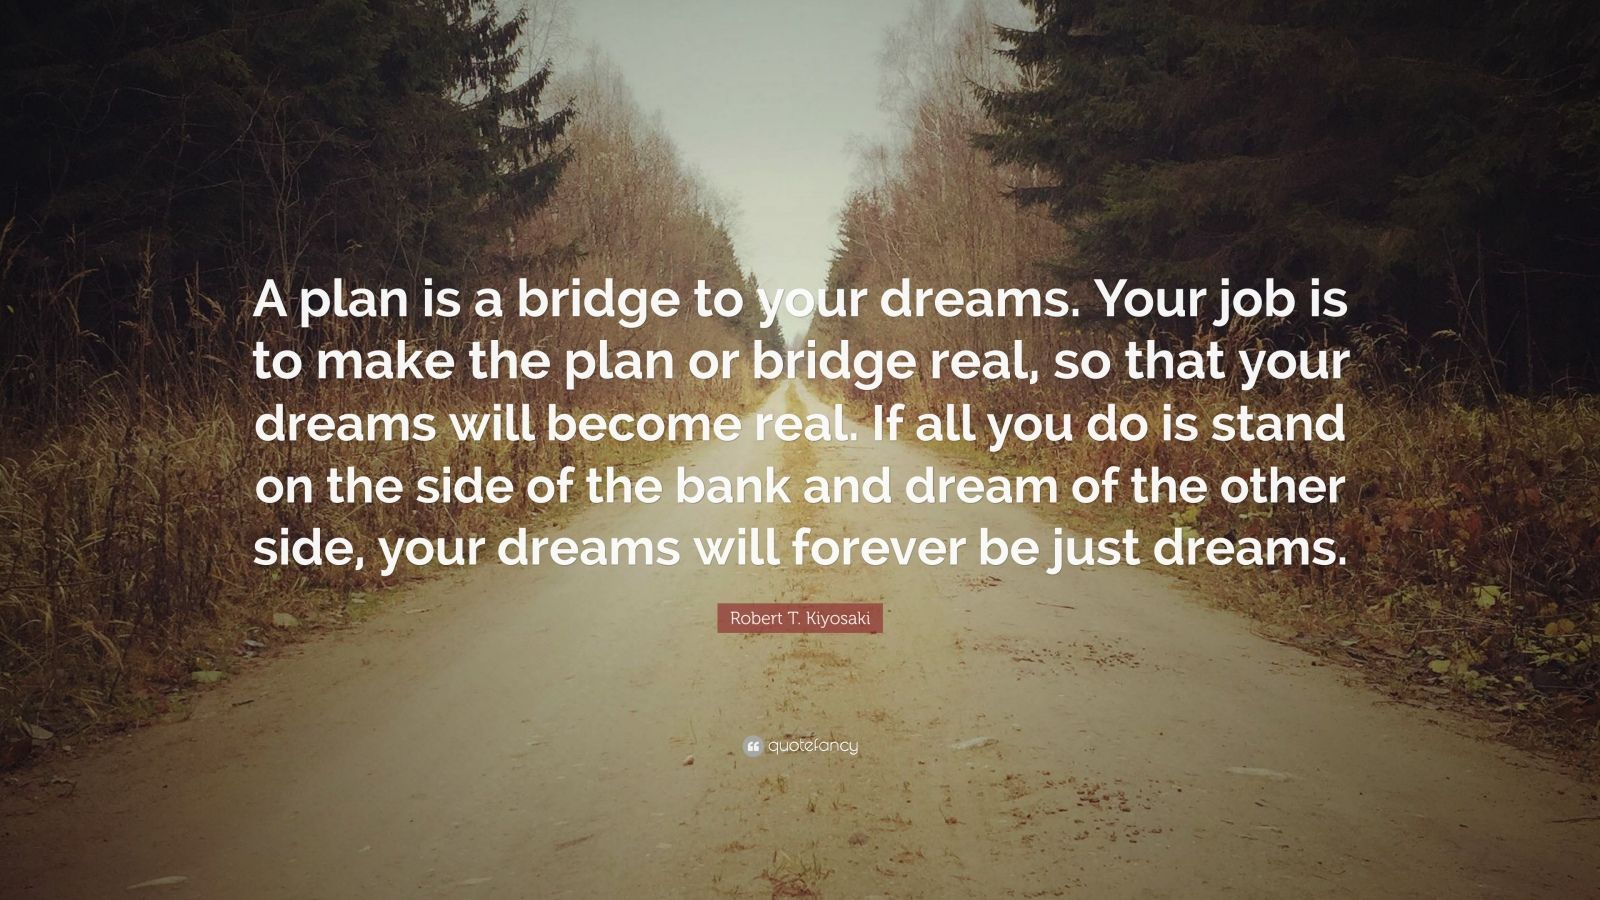 """Robert T. Kiyosaki Quote: """"A plan is a bridge to your dreams. Your job is to make the plan or bridge real, so that your dreams will become real. If all you do is stand on the side of the bank and dream of the other side, your dreams will forever be just dreams."""""""